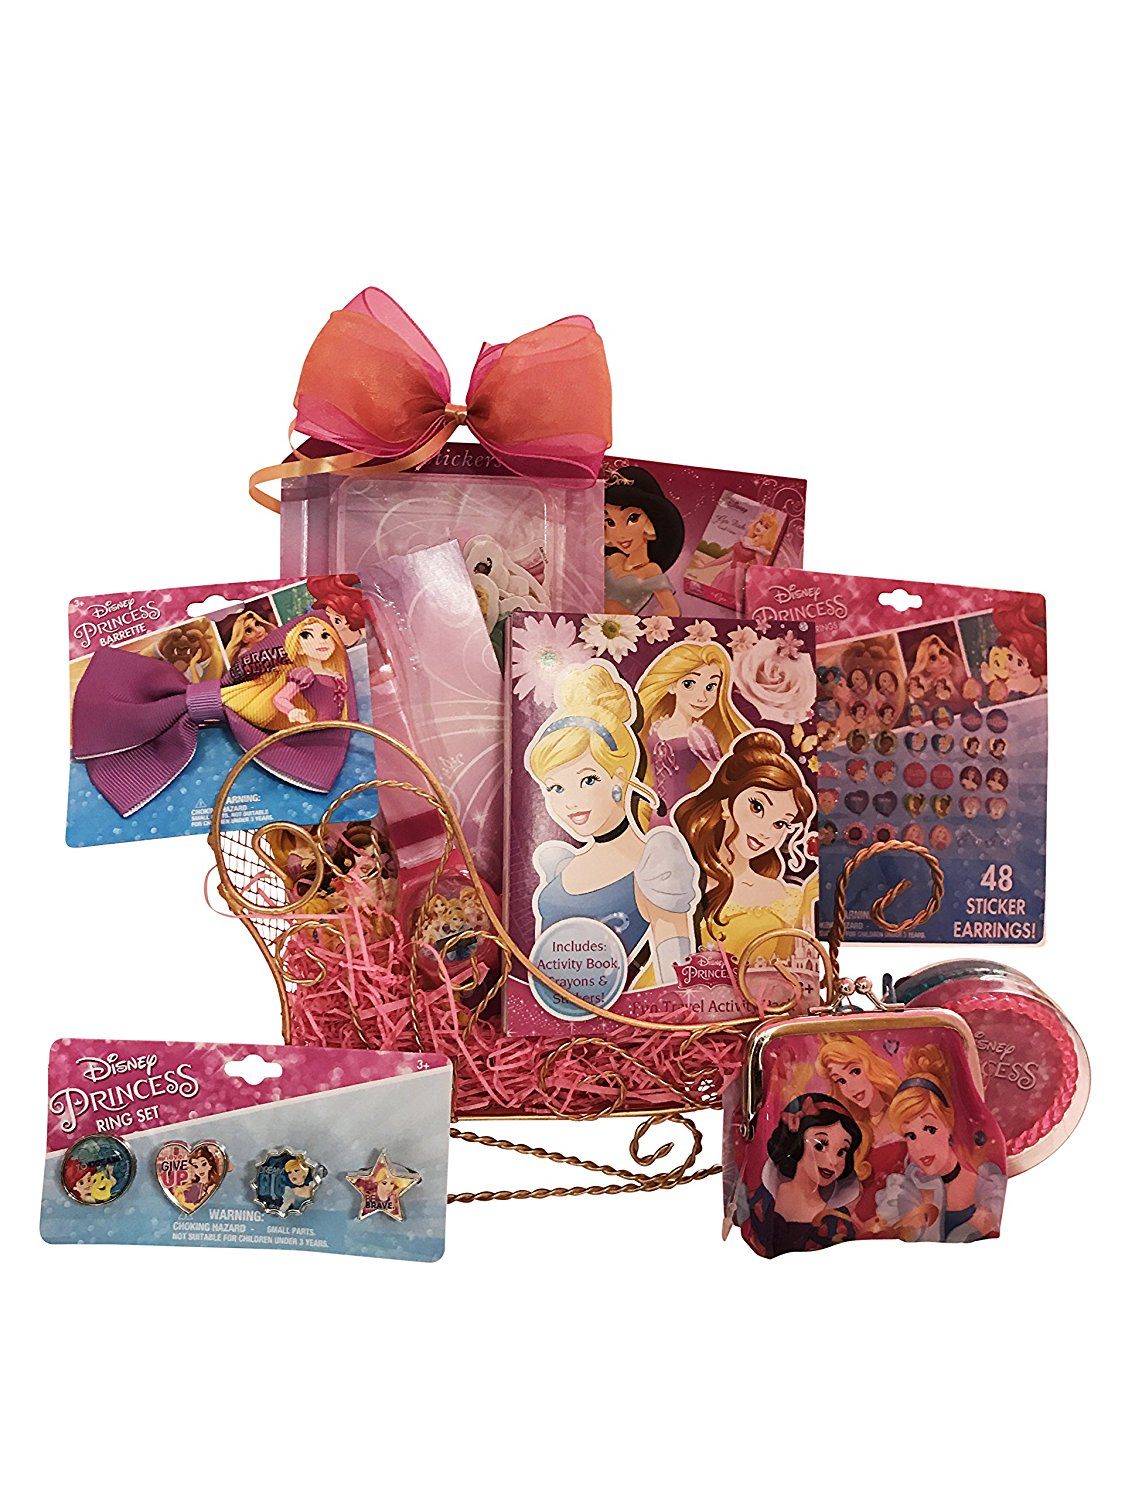 Disney Princess Sleigh Easter Gift Baskets for Girls Perfect Easter Gift for Girls 3 to 6 Years Old